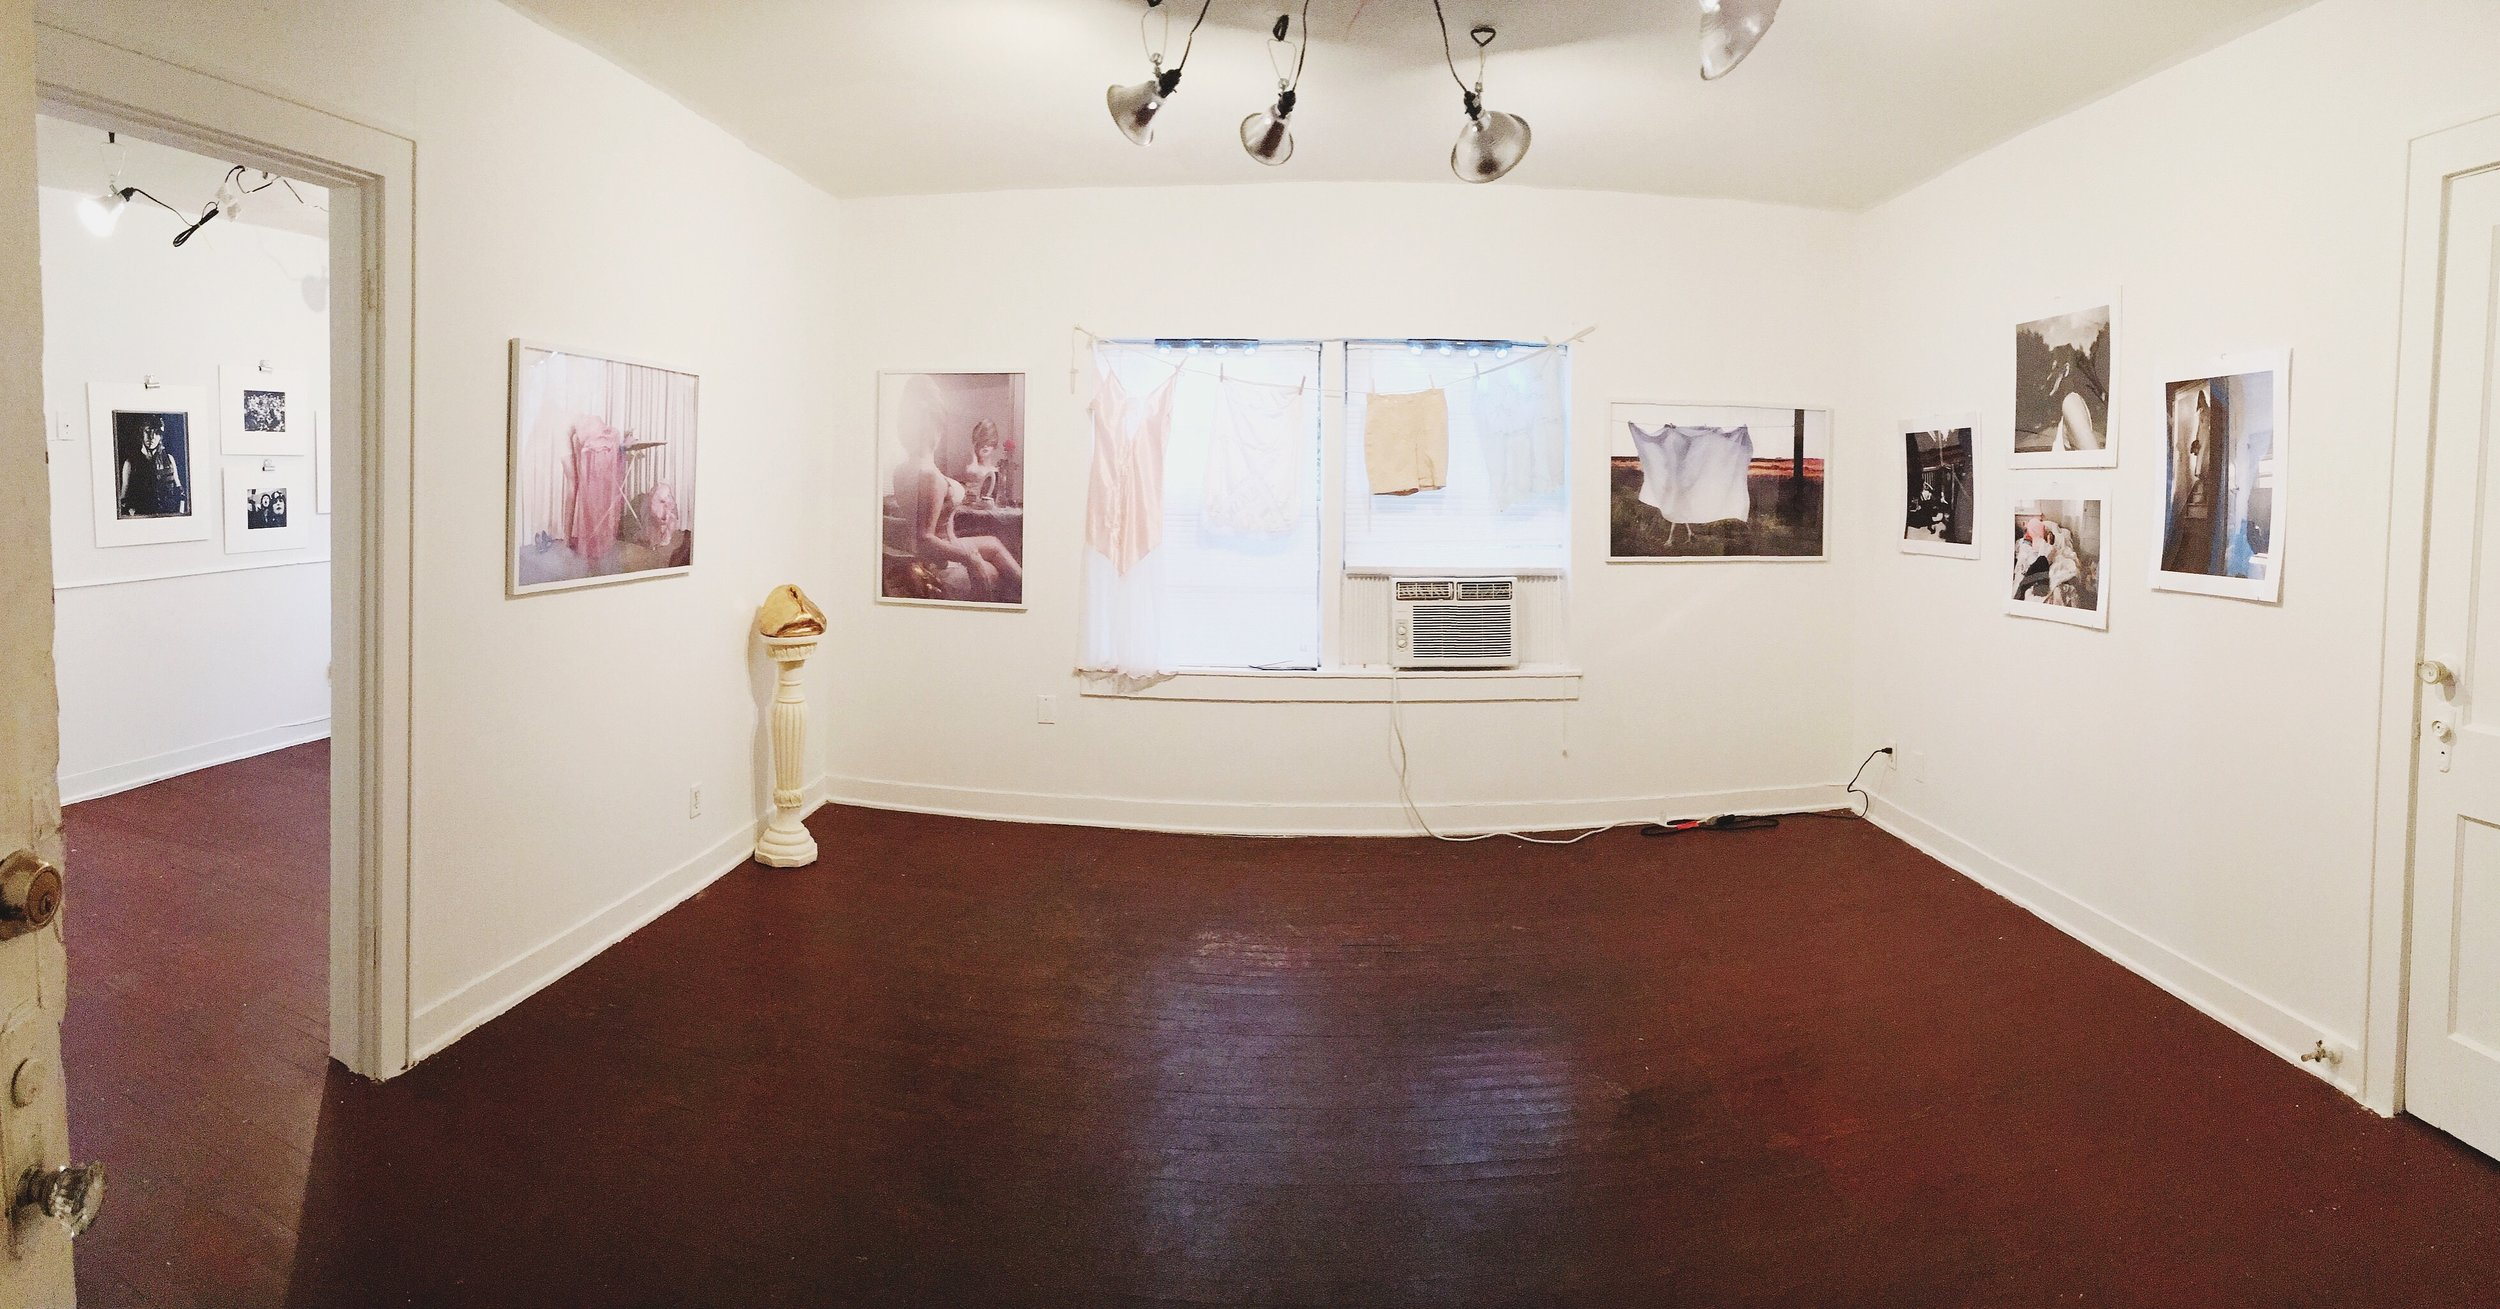 Installation photo from FLATS Presents, Perceptions: Women. A room with white walls has photographs taken by women of women. A window a/c is in the window next to a gold and white sculpture.